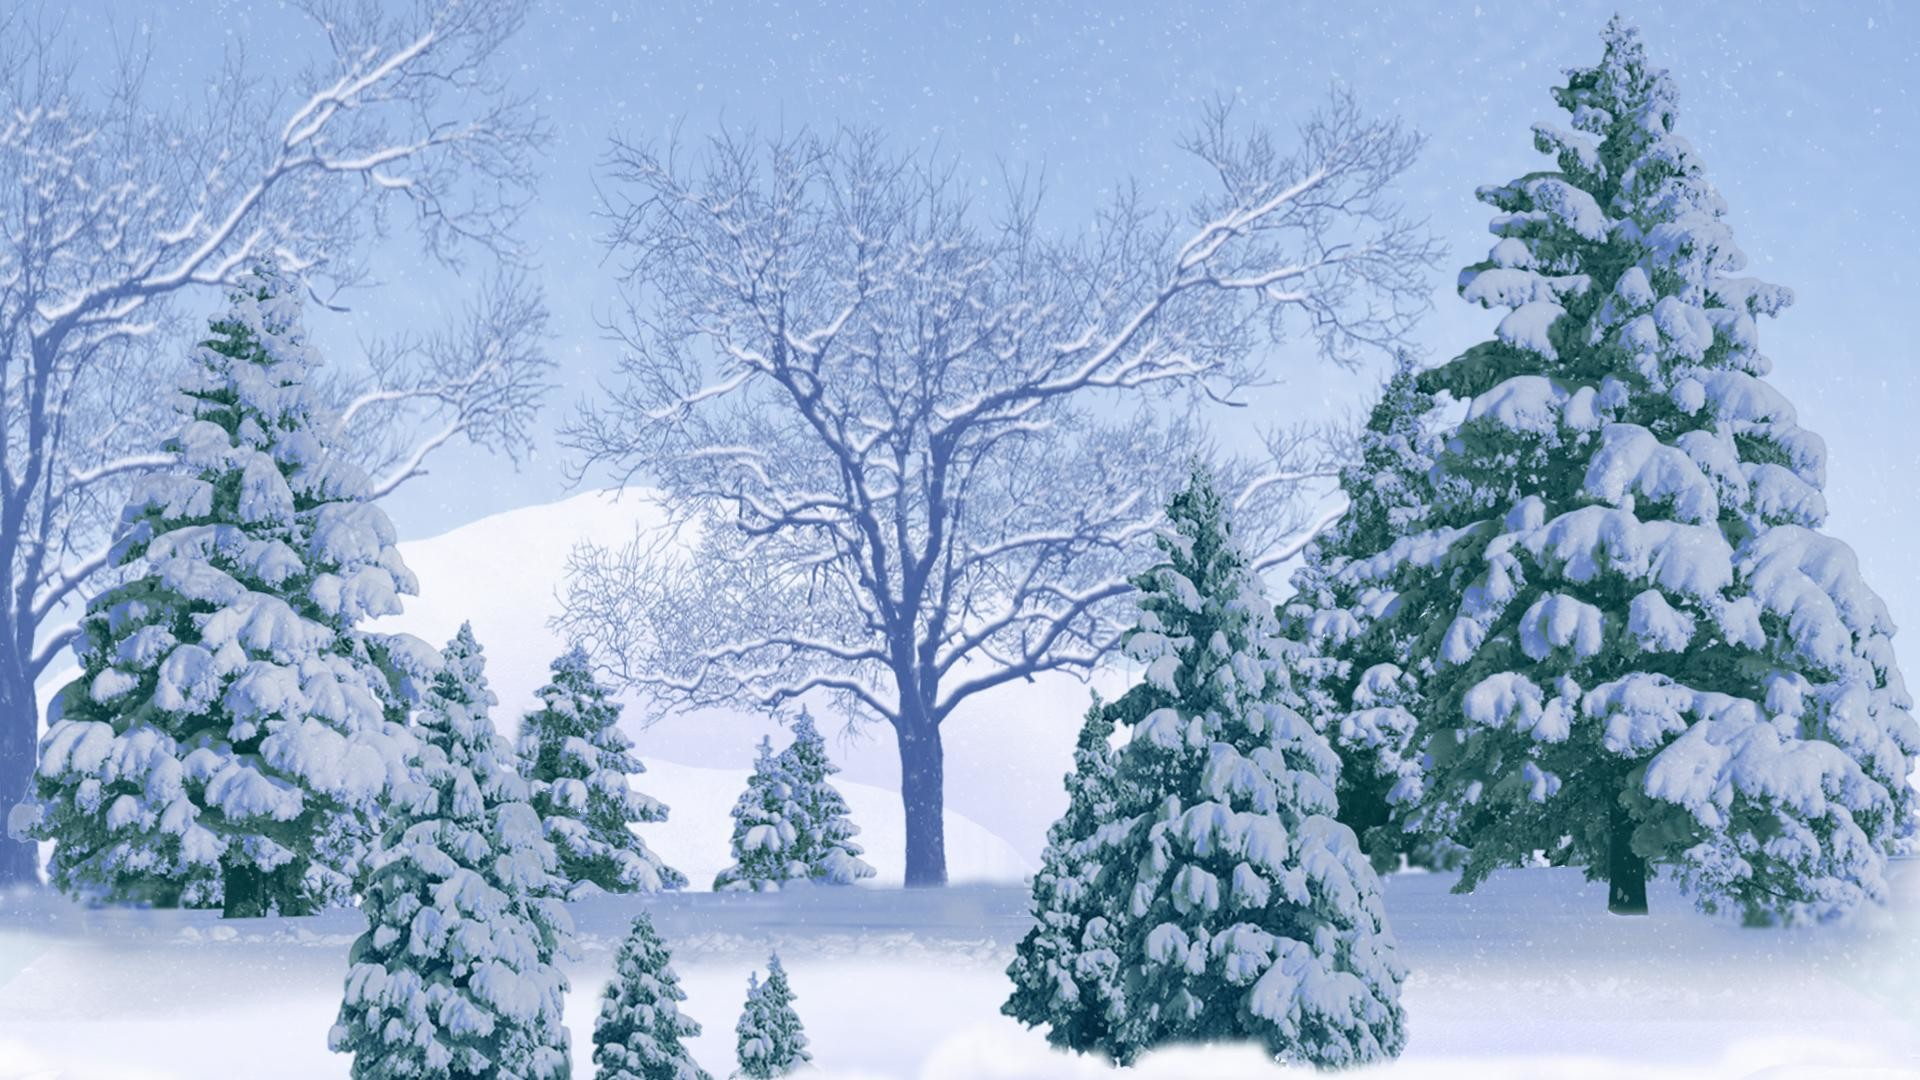 Winter and snow trees white backgrounds wide wallpapers:1280×800,1440×900,1680×1050  –